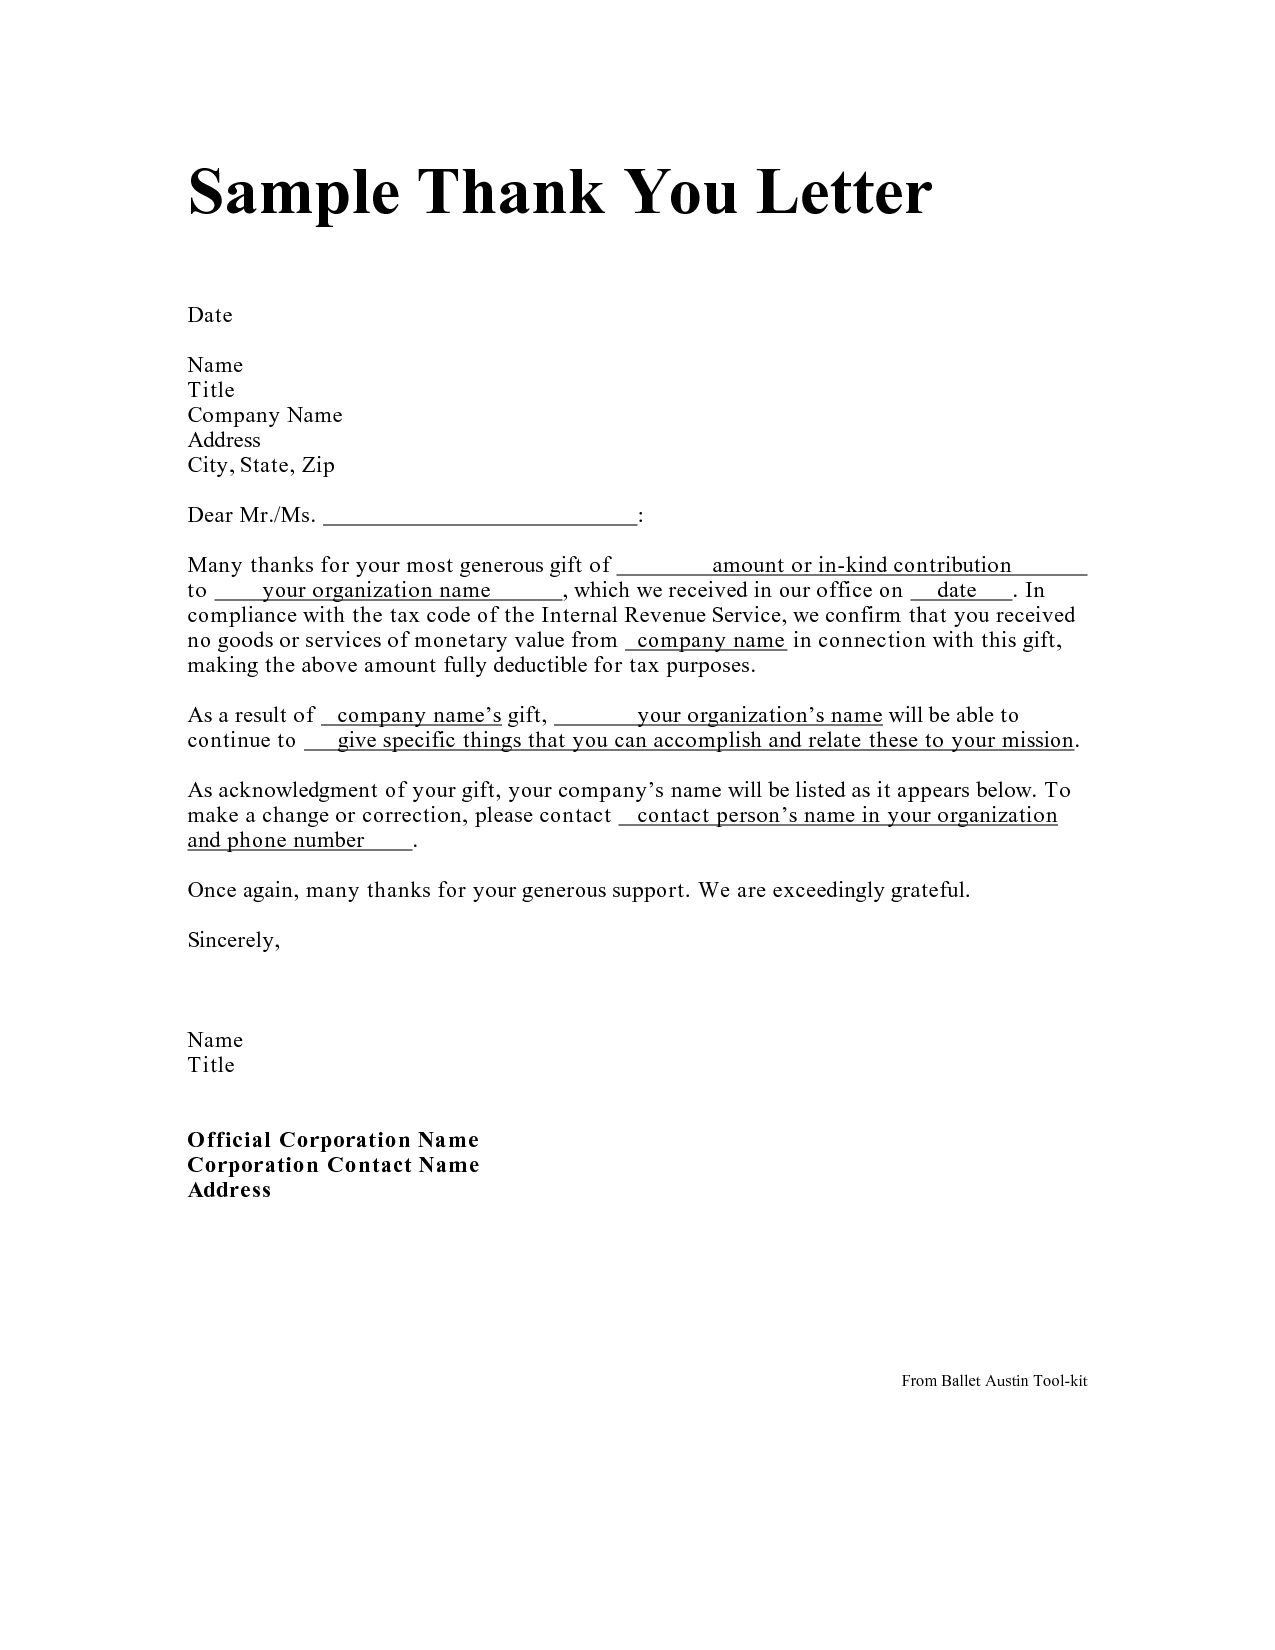 Veterans Day Thank You Letter Template - Personal Thank You Letter Personal Thank You Letter Samples